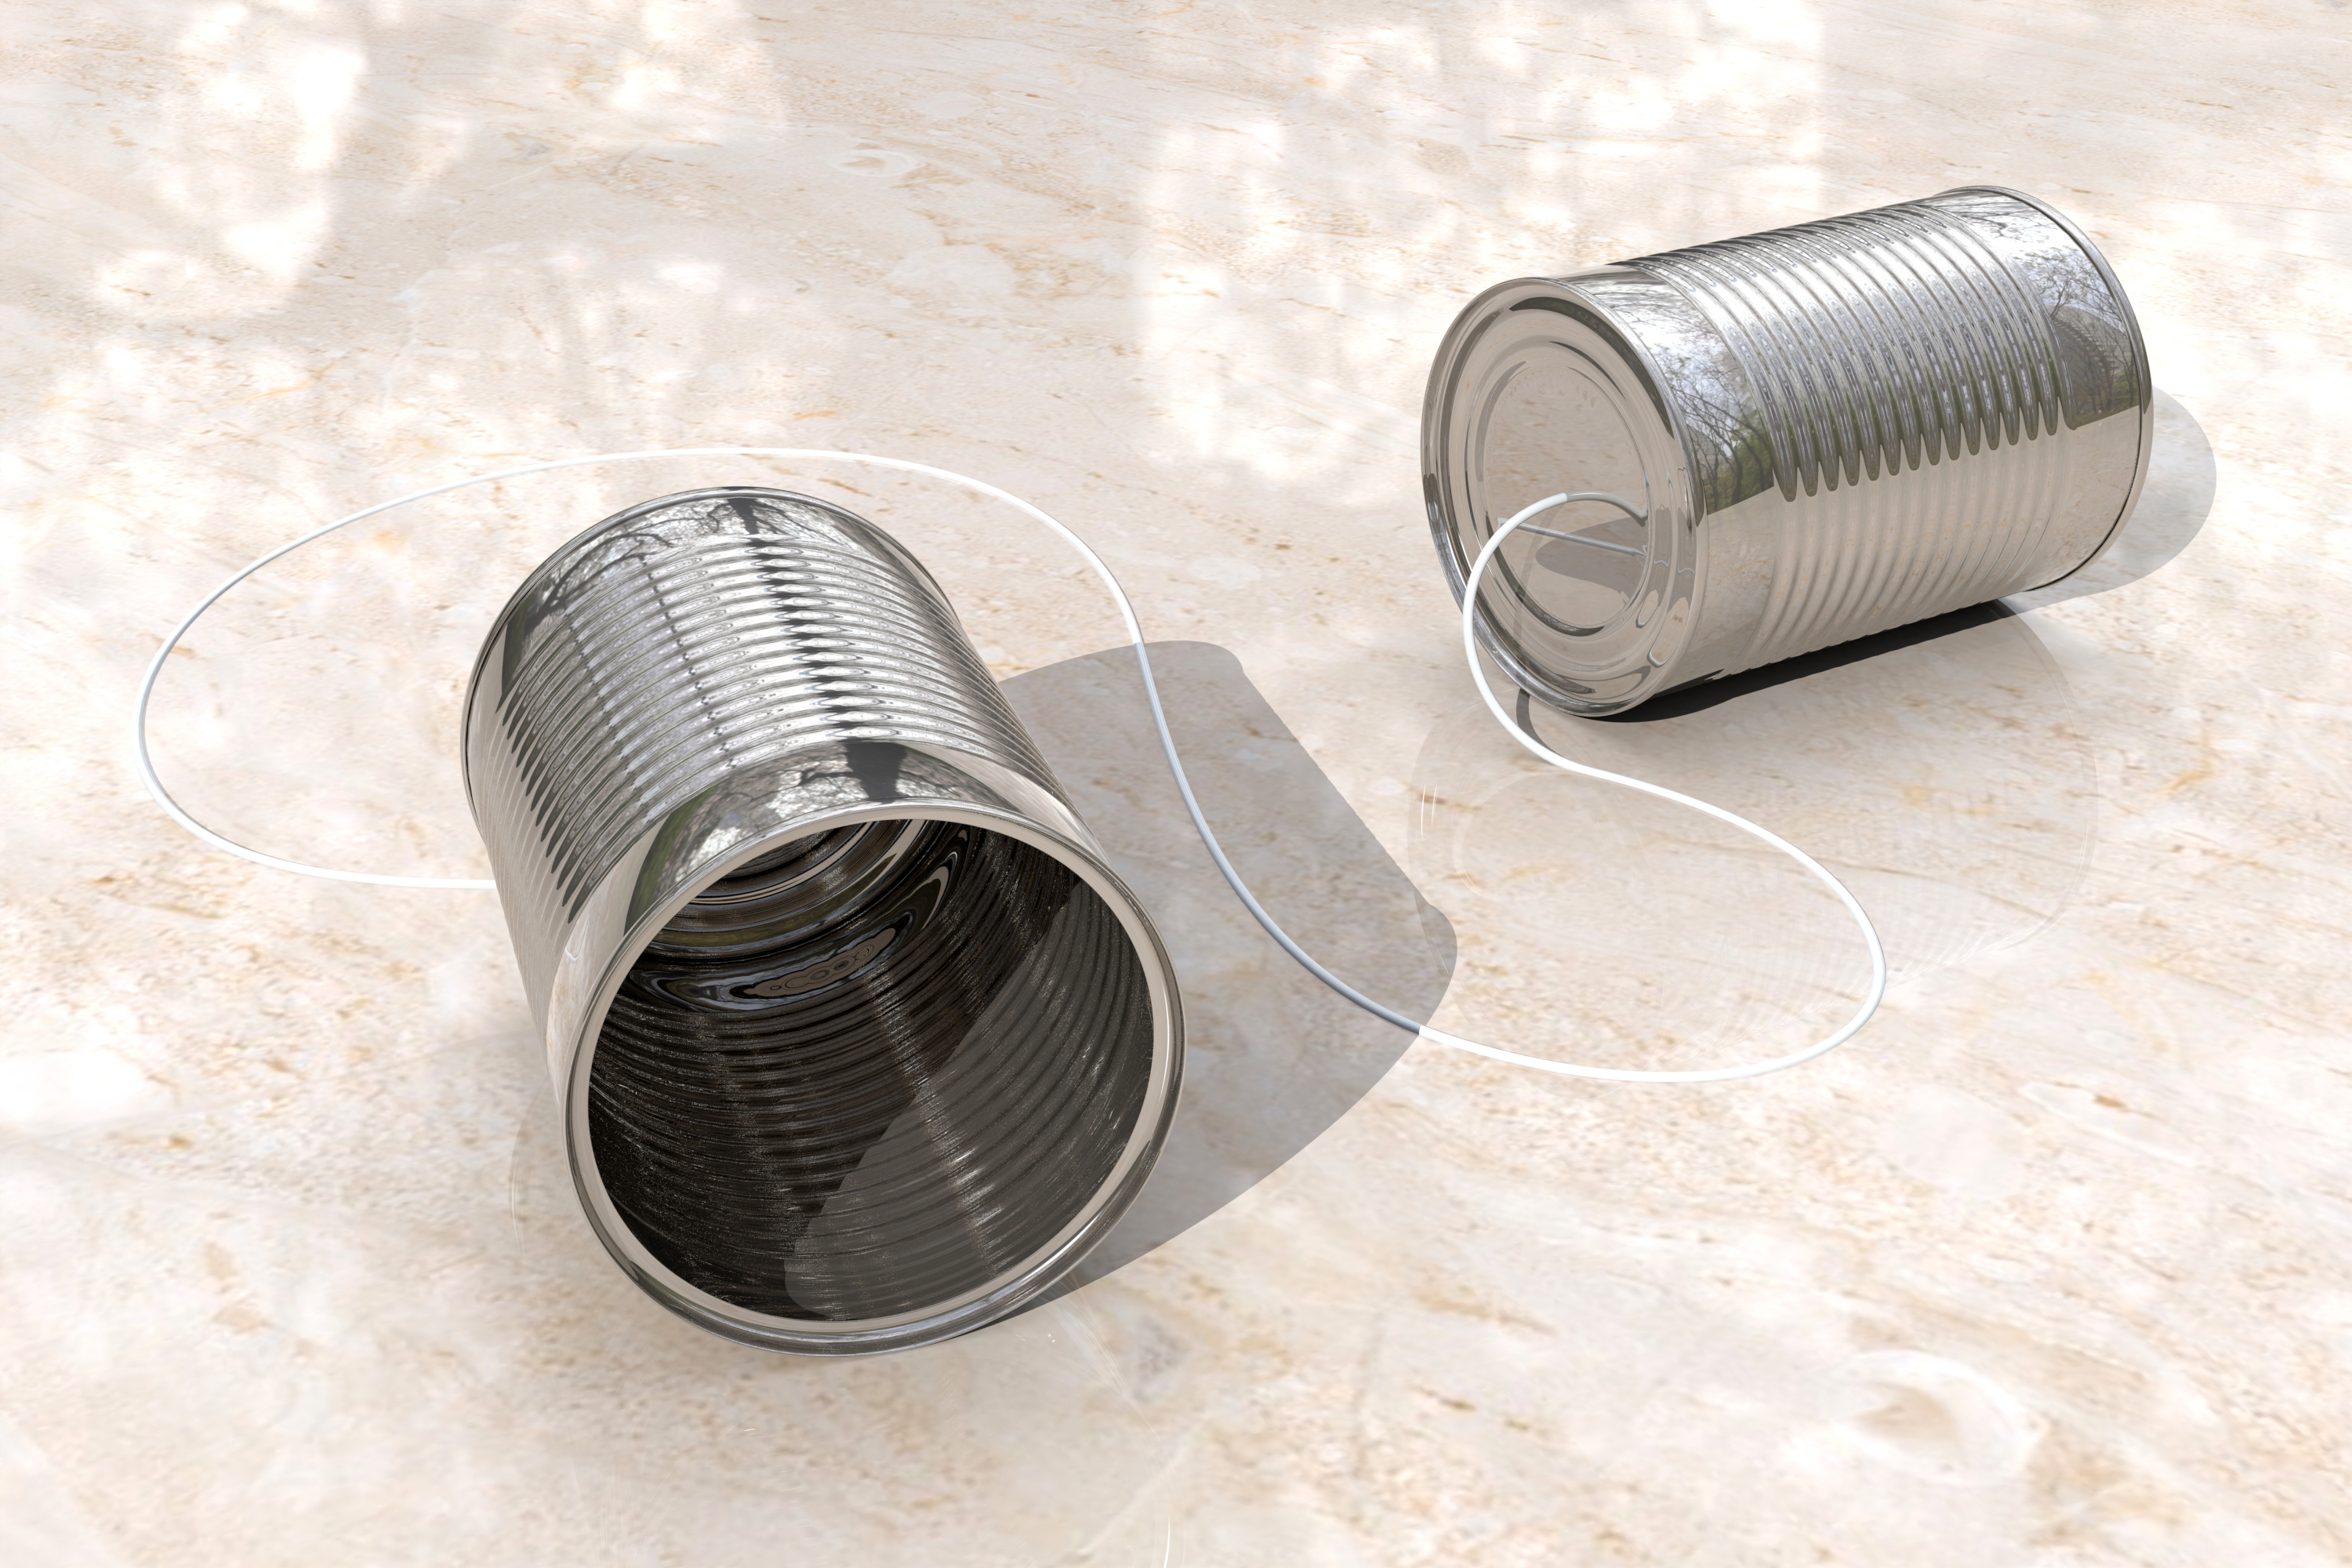 Two silver coloured tin cans are connected by a string. The open end of one can faces the viewer, while the open end of the other faces the right side of the picture. The cans are lying down on a cream marbled background.